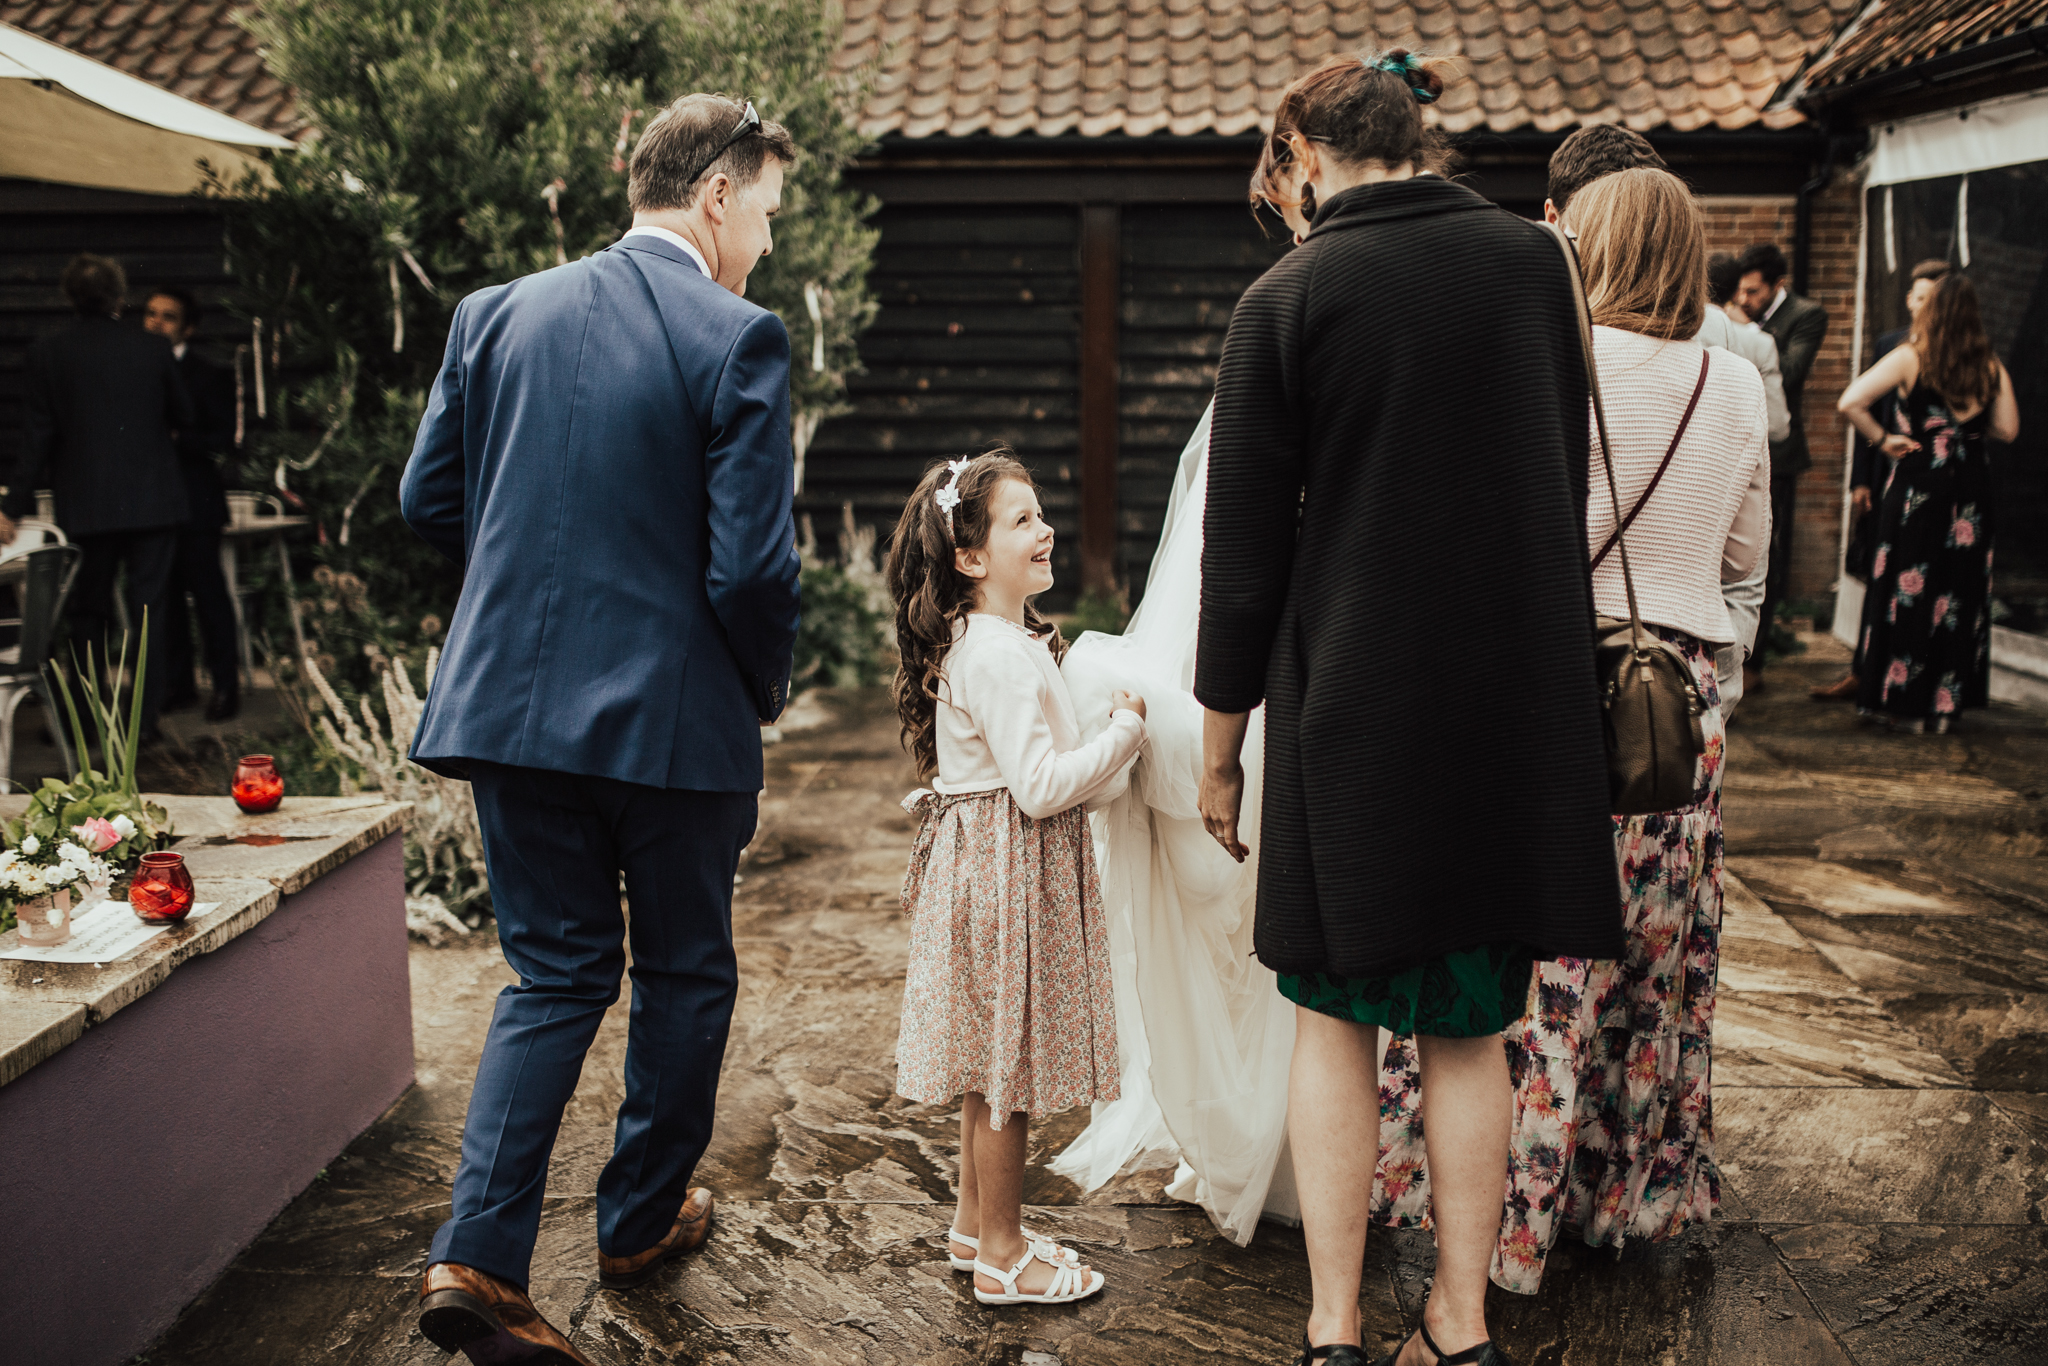 Hannah-Gerrard-Norfolk-Wedding-Back-to-the-Garden-Holt-Wells-Photography-Darina-Stoda-74.jpg